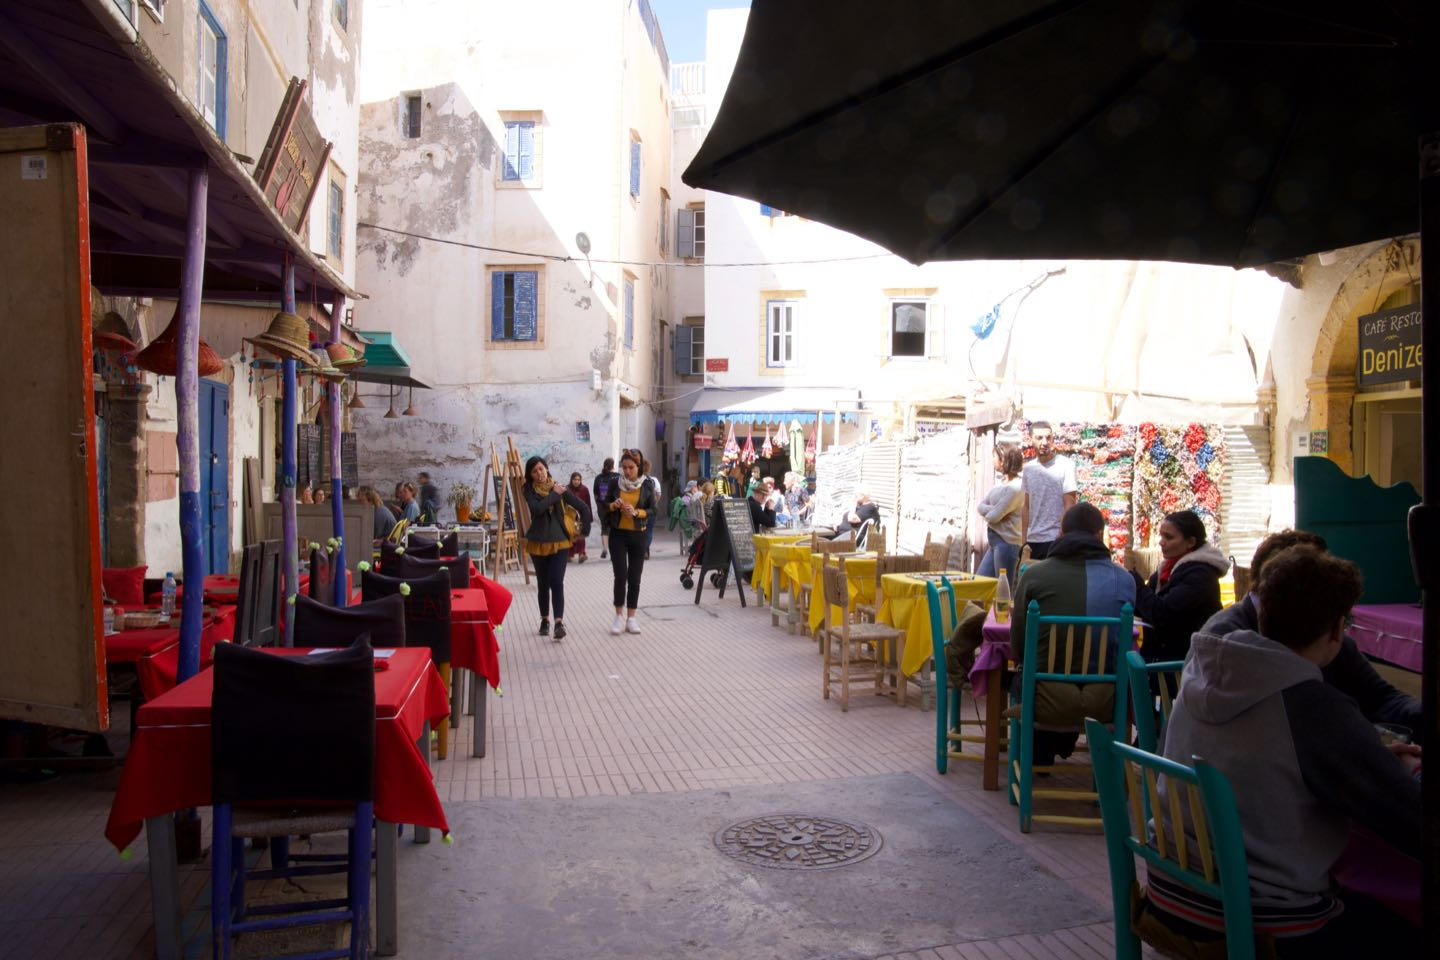 Rue Boutoil, a small alley full of restaurants.